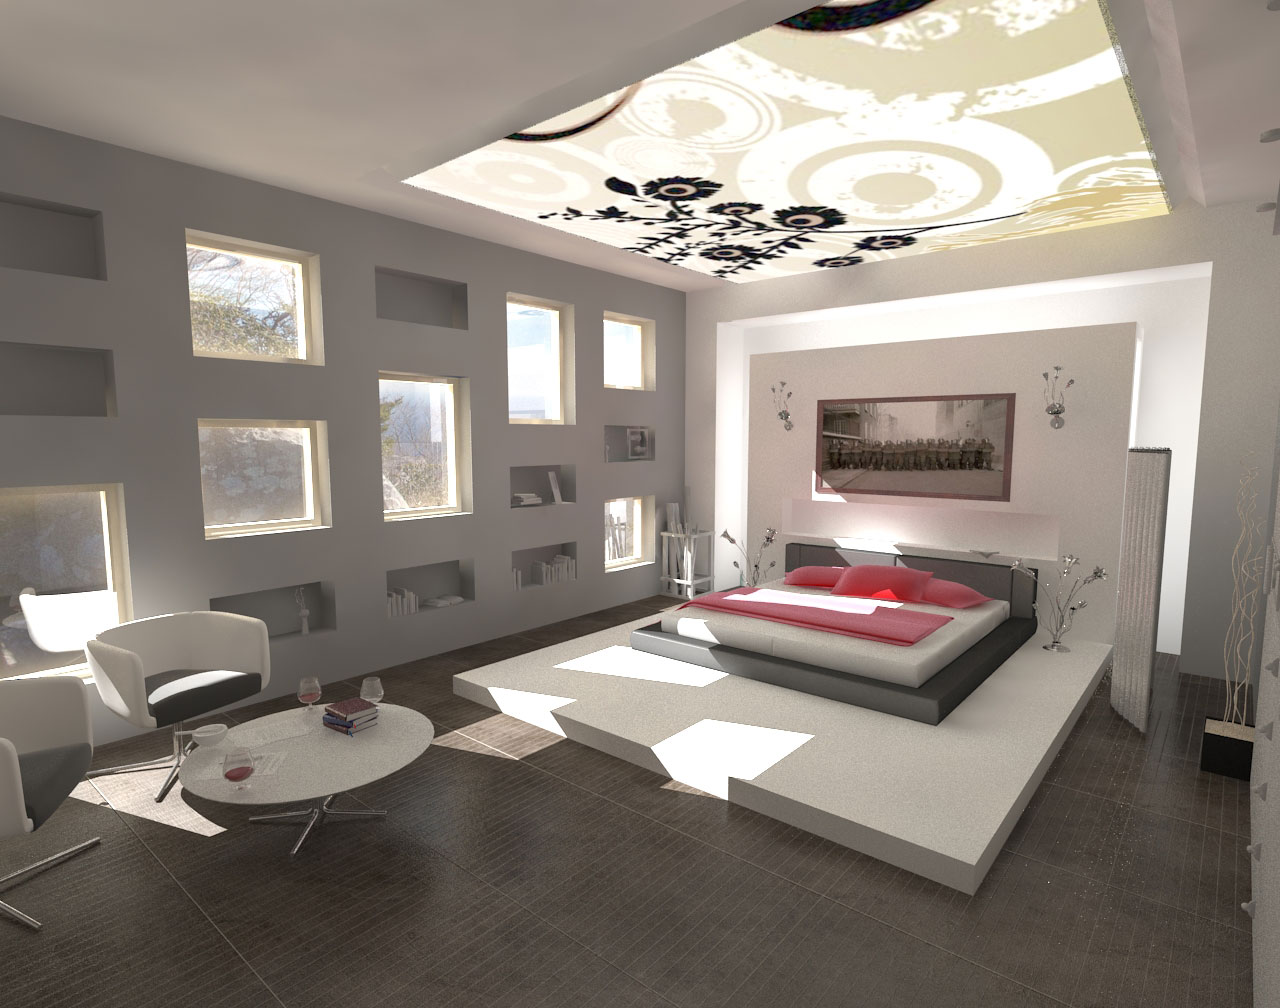 Decorations minimalist design modern bedroom interior for Interior design images bedroom